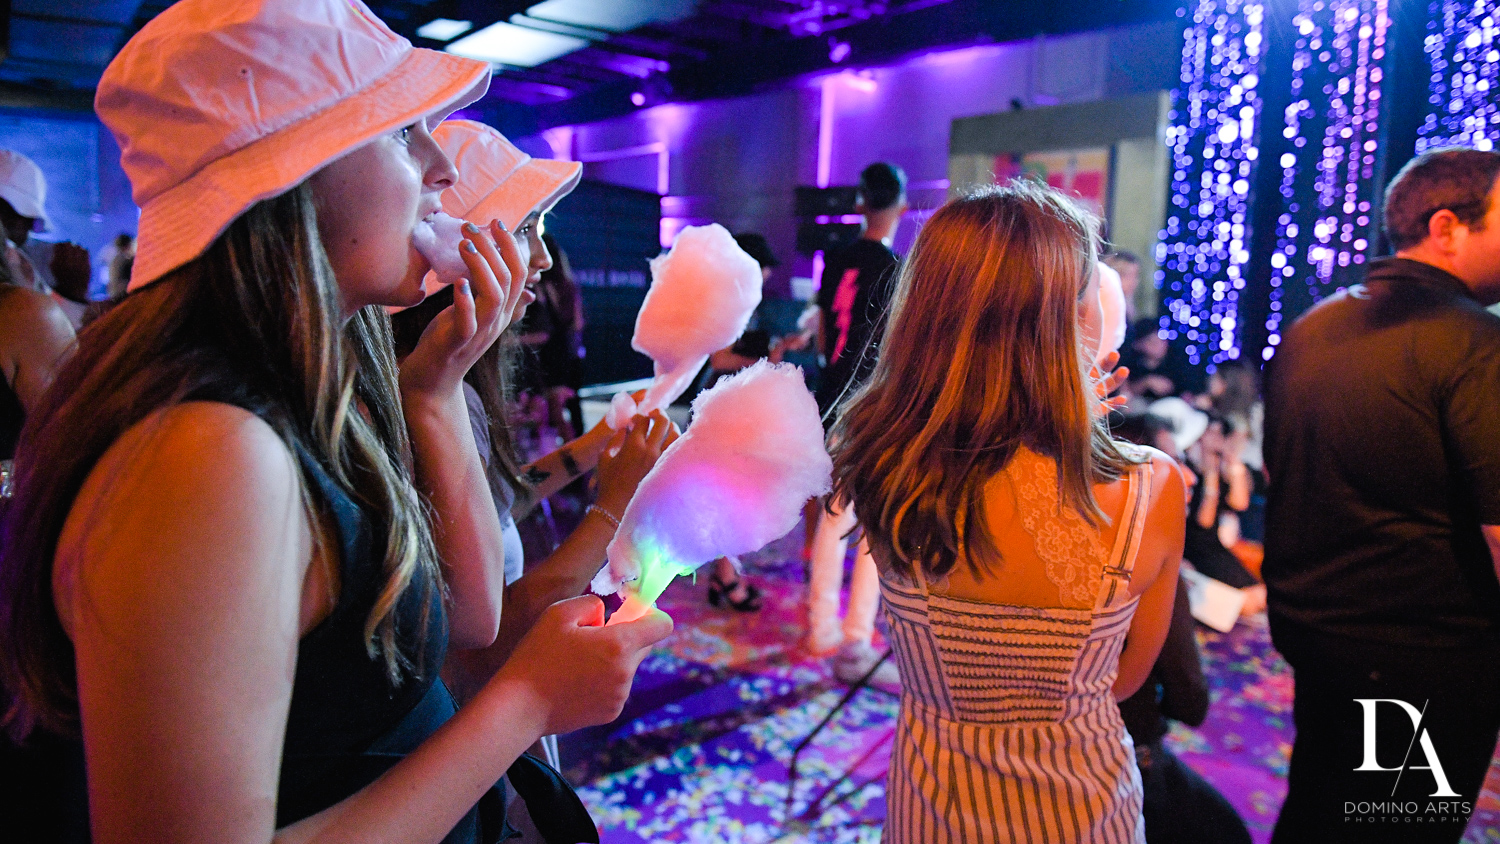 neon cotton candy at Colorful B'Not Mitzvah at Gallery of Amazing Things by Domino Arts Photography